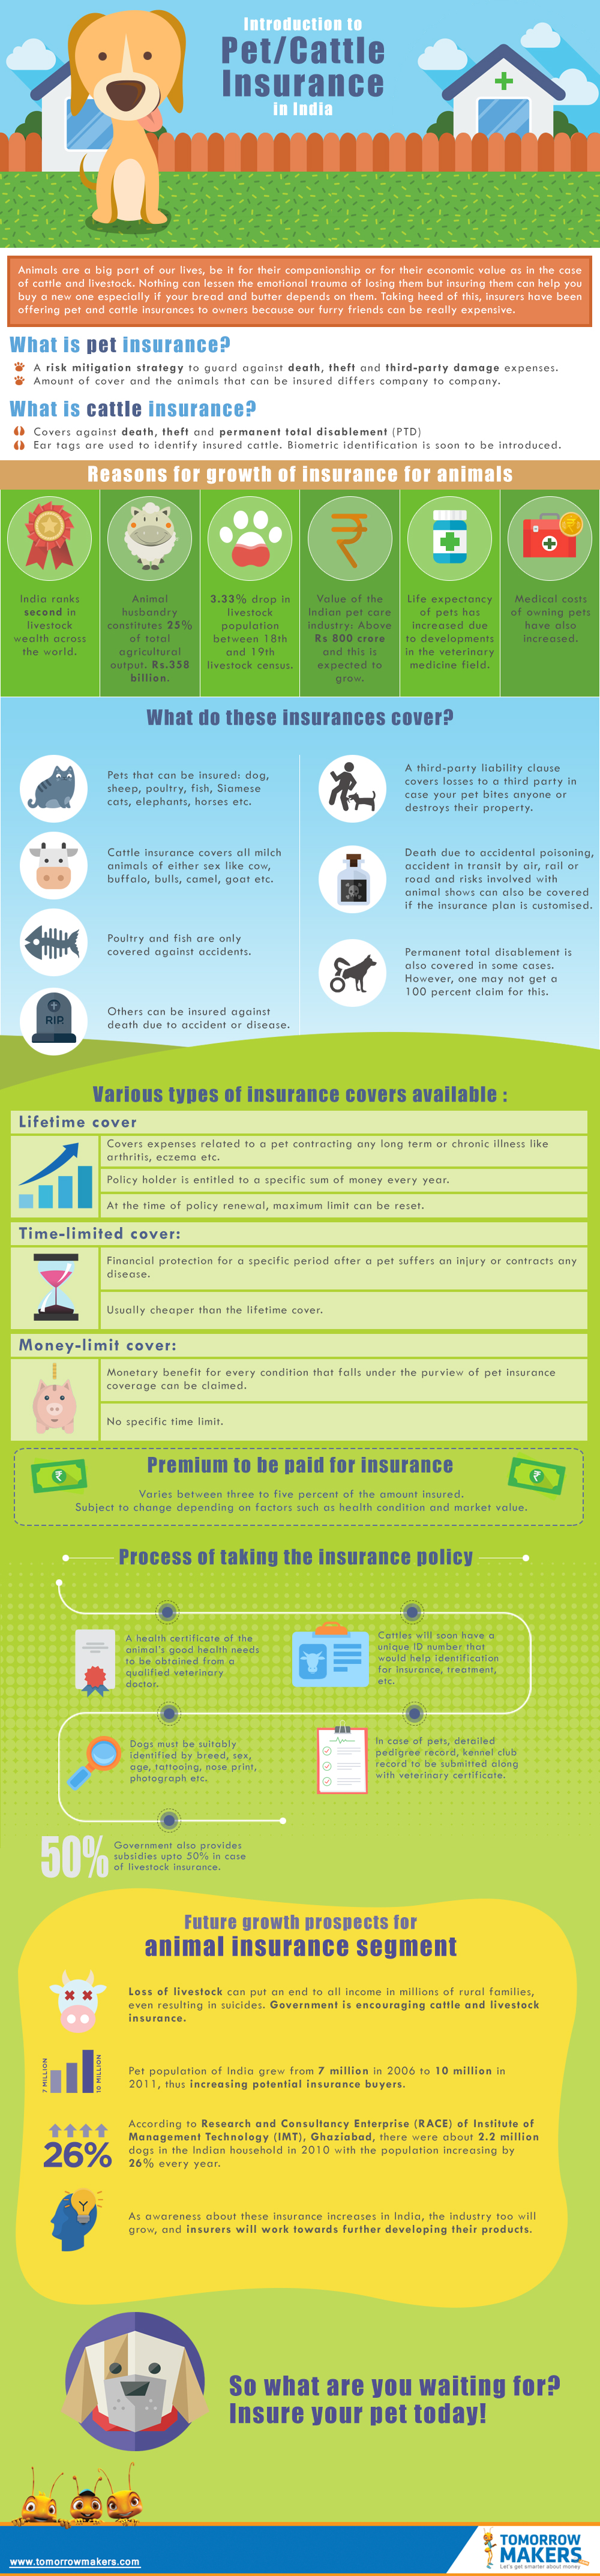 introduction-to-pet-insurance-in-india-infographic